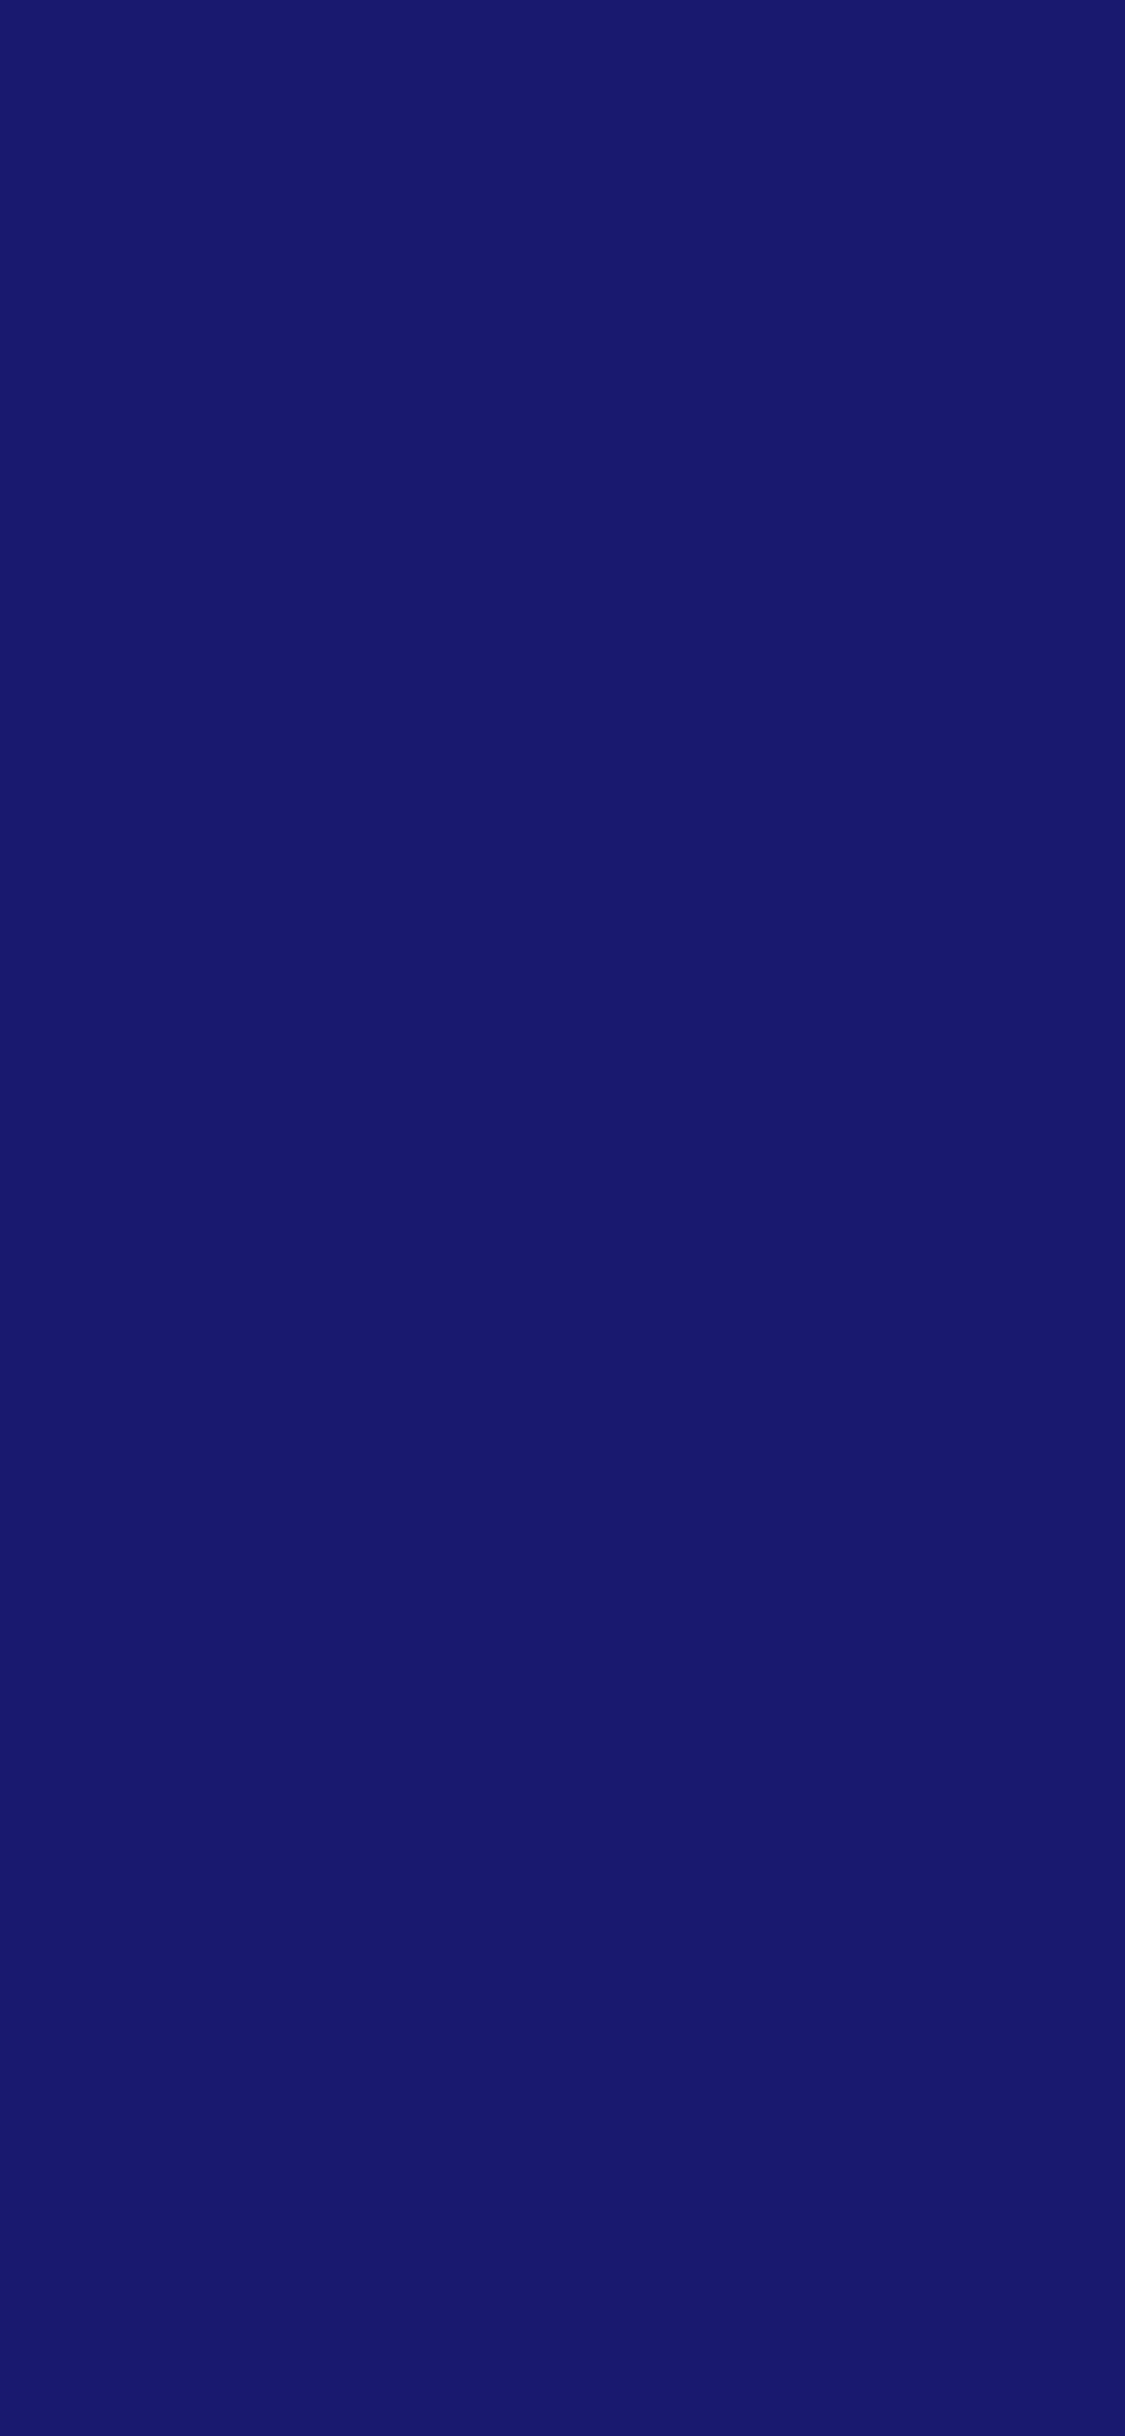 1125x2436 Midnight Blue Solid Color Background